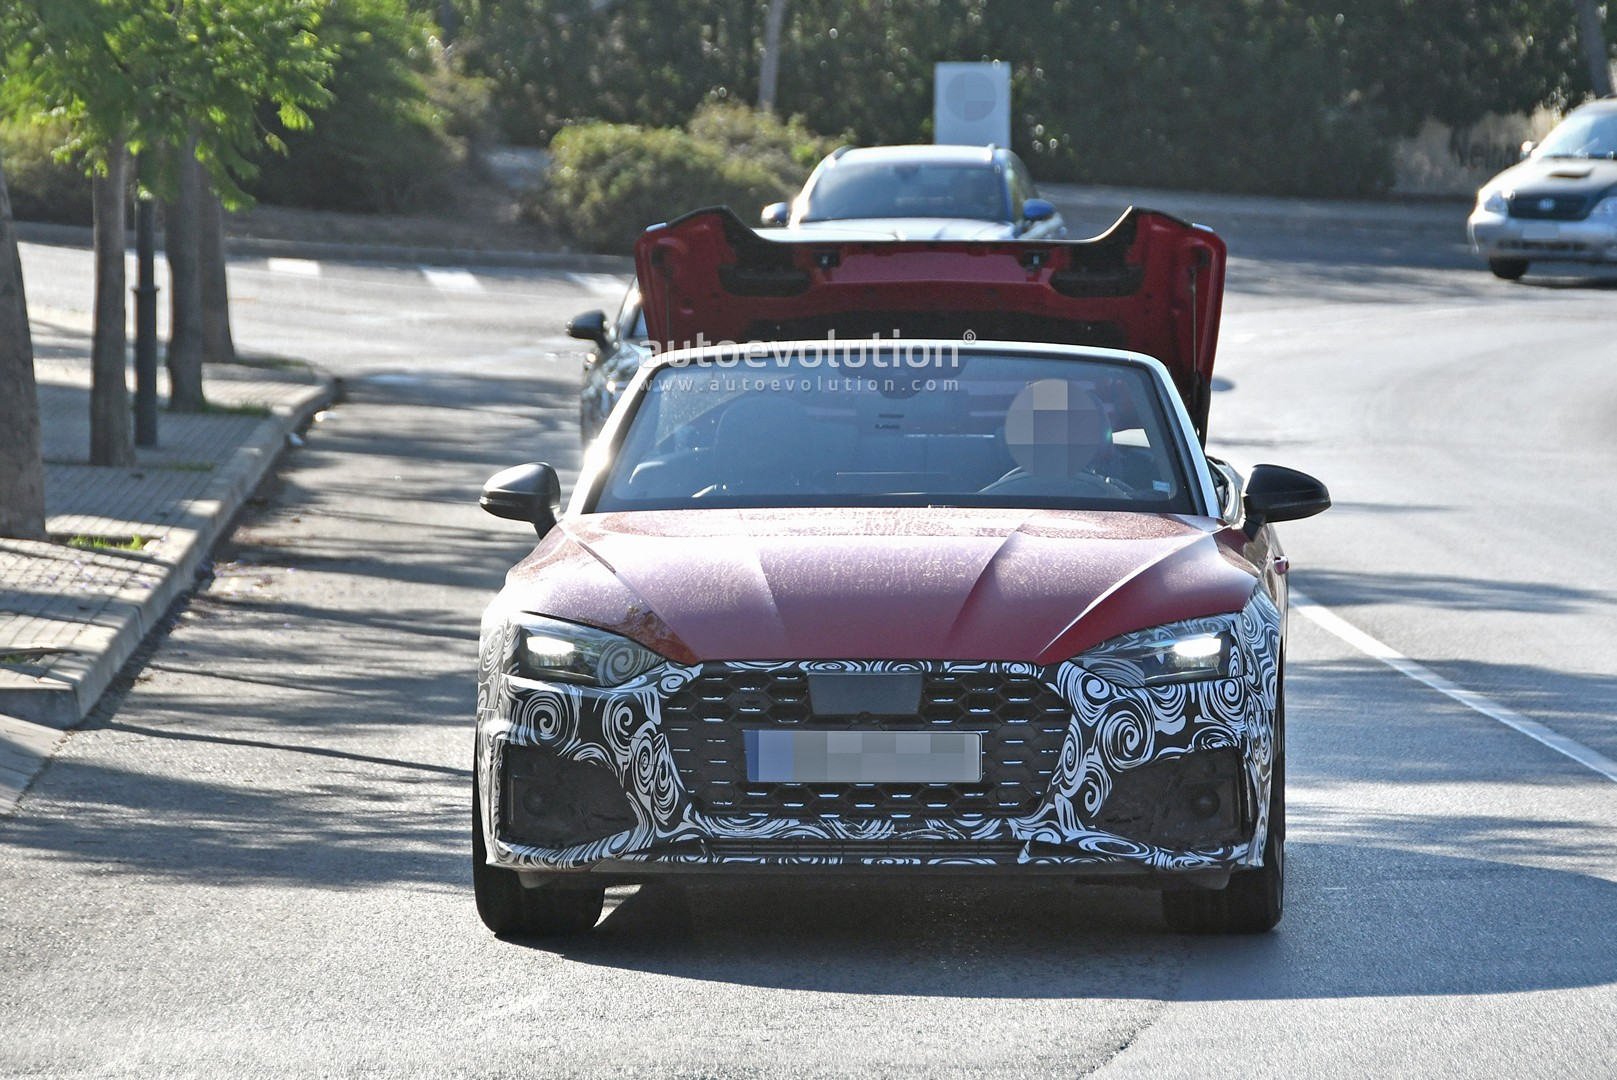 2020 - [Audi] A5 Coupé/Cab/SB restylée 2021-audi-s5-facelift-spied-with-cabrio-top-in-action-shows-minimal-changes-135920_1